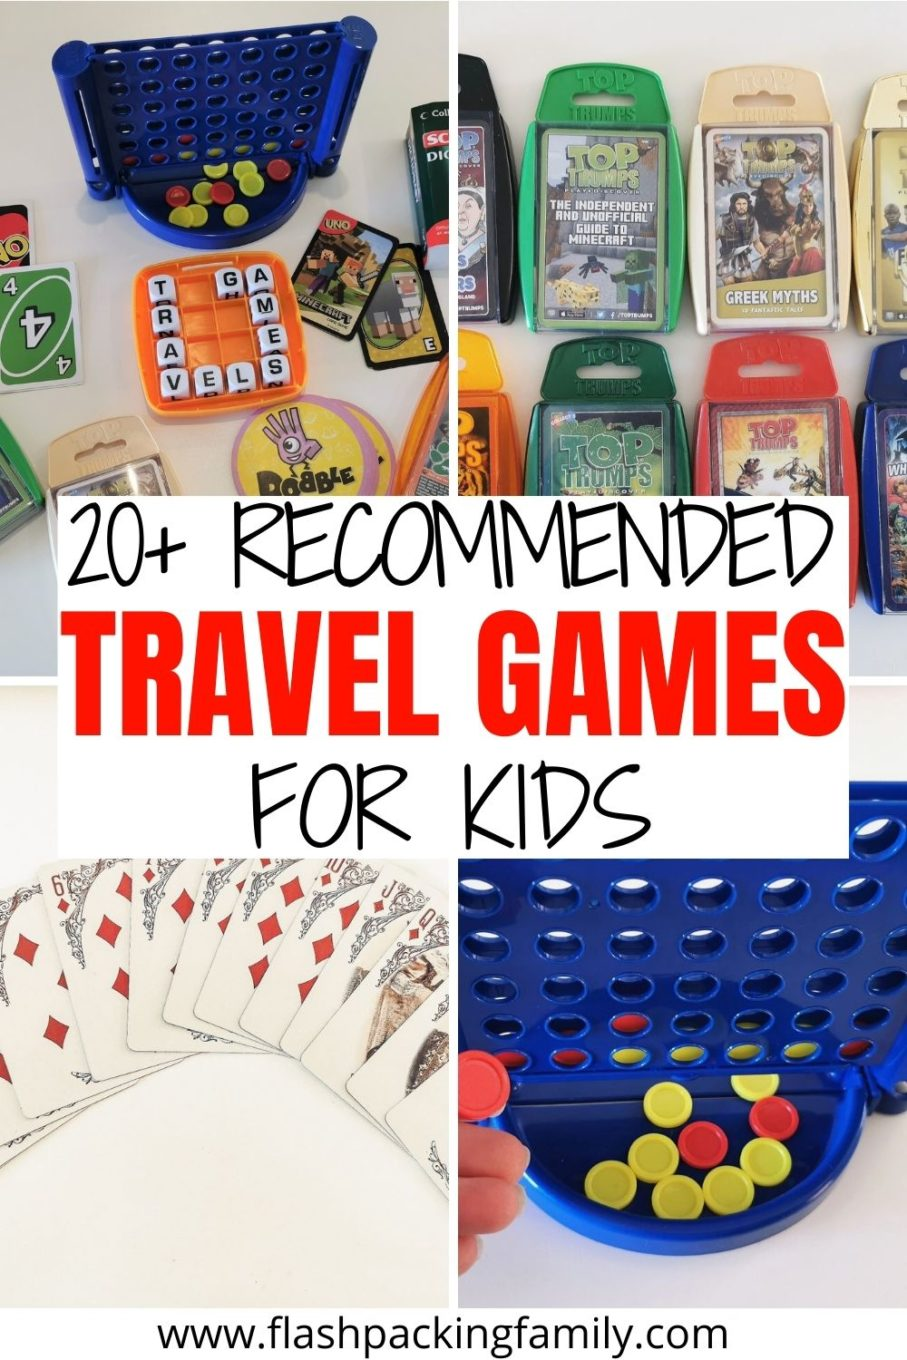 20+ Recommended Travel Games for Kids.